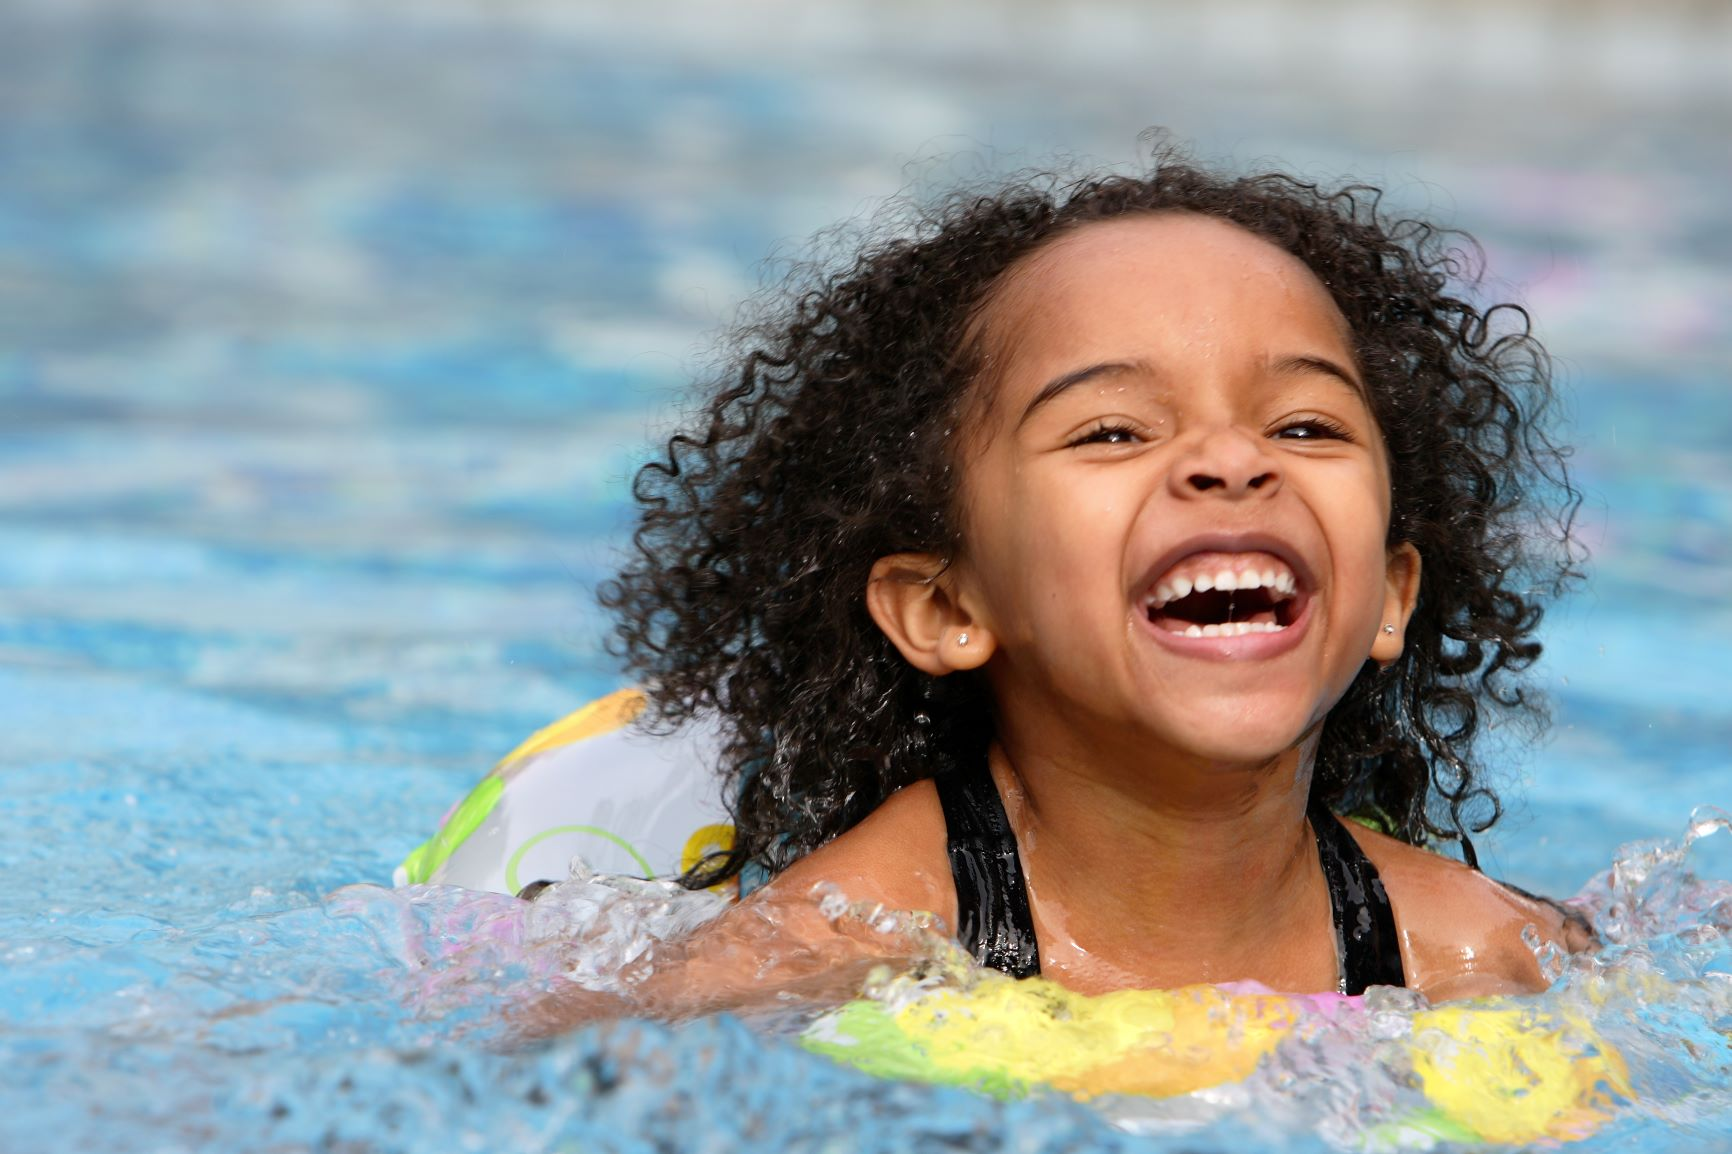 Young girl laughing while swimming.